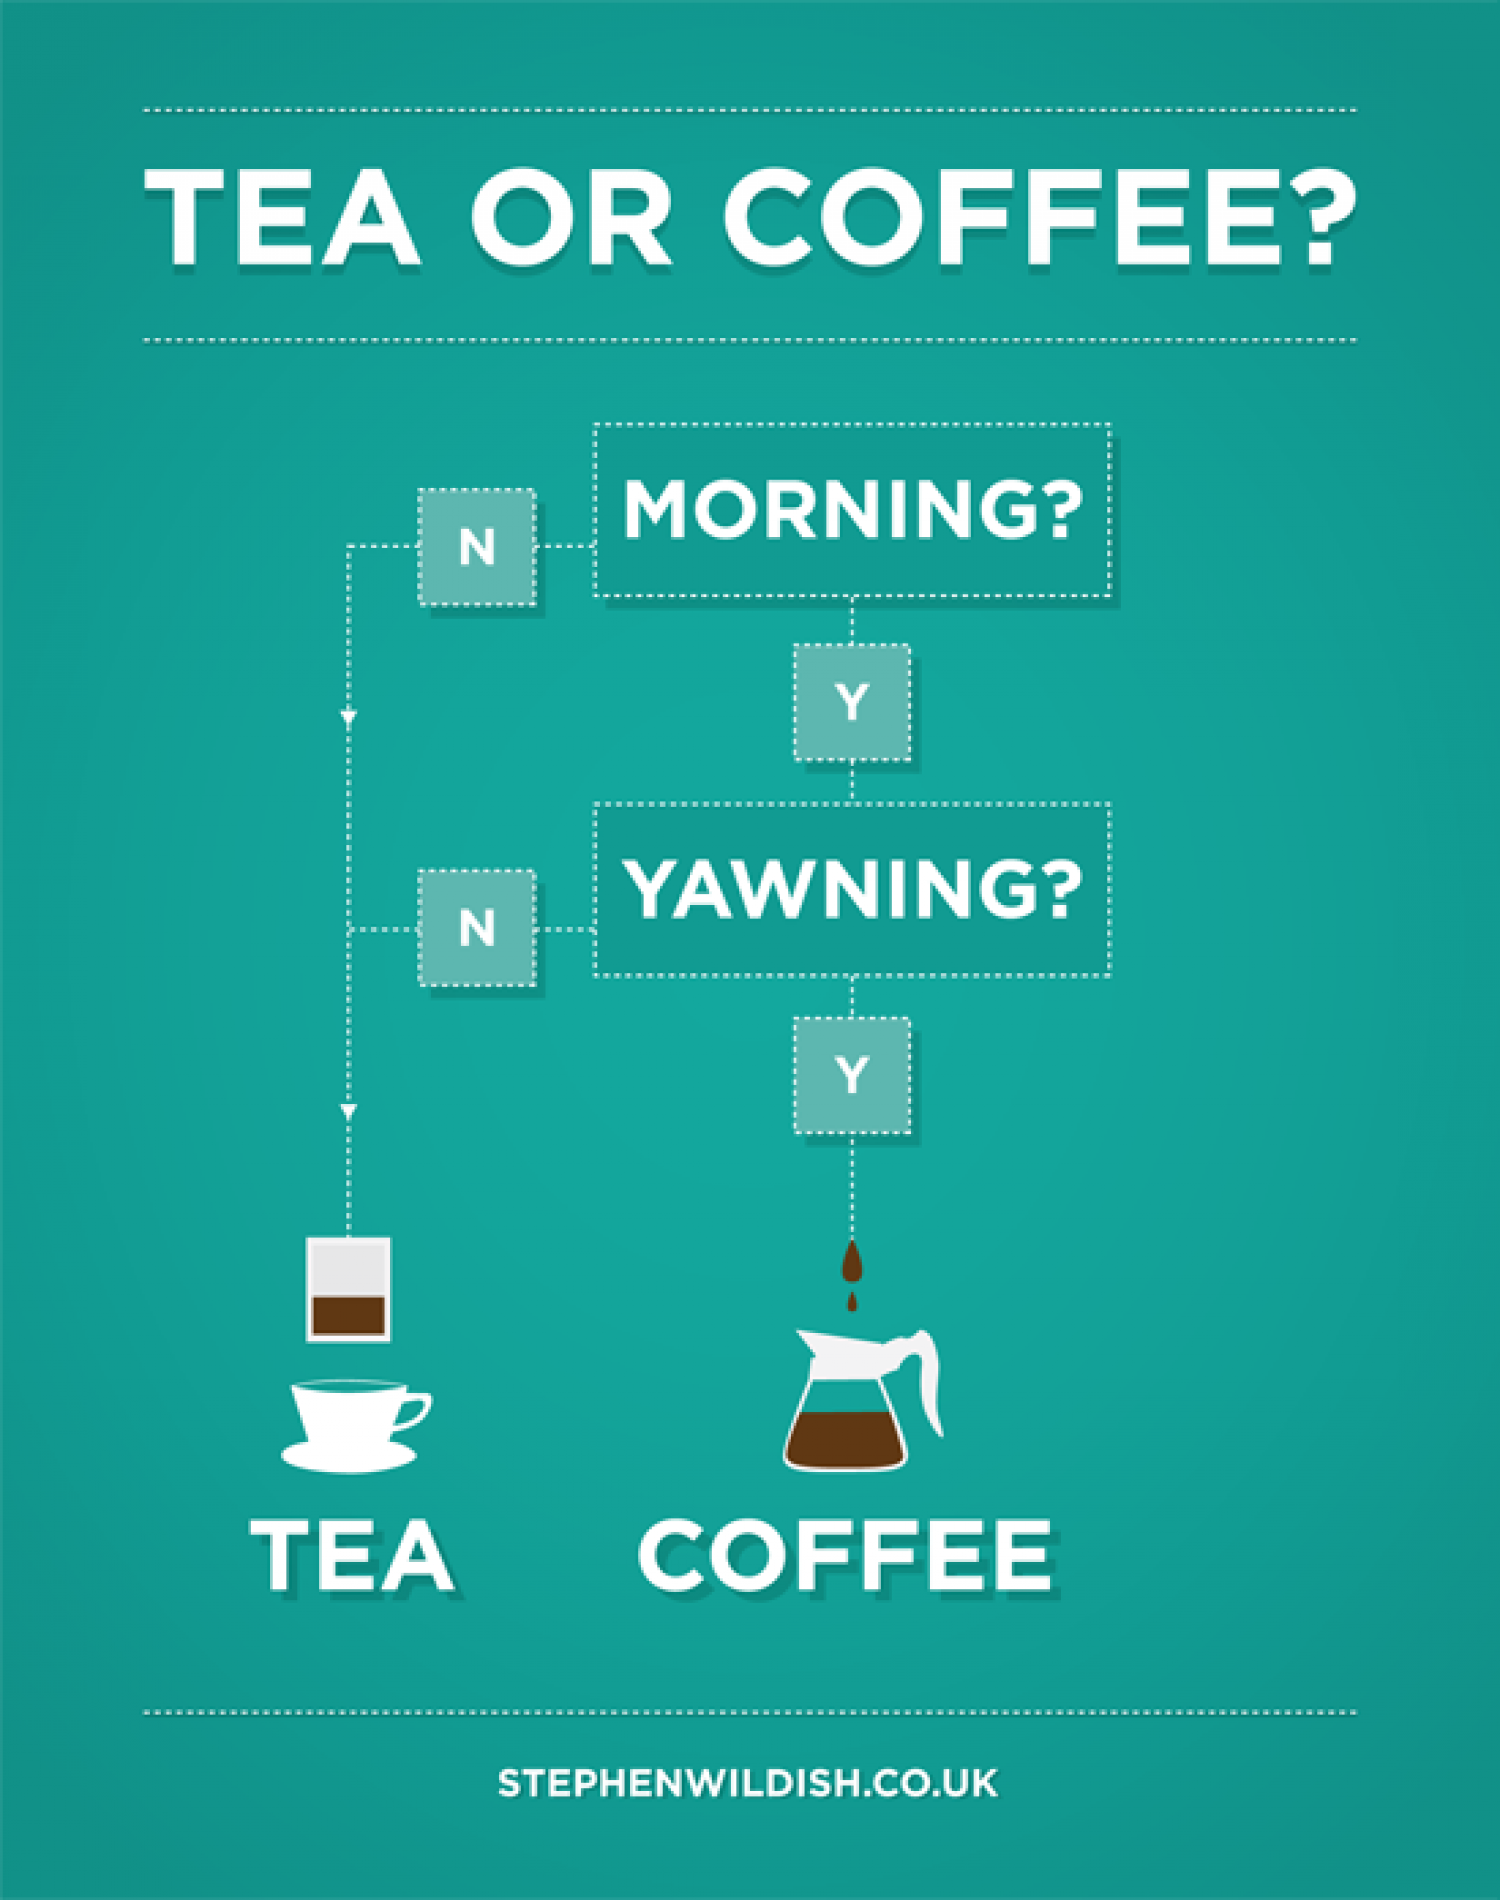 Tea or Coffee? Infographic